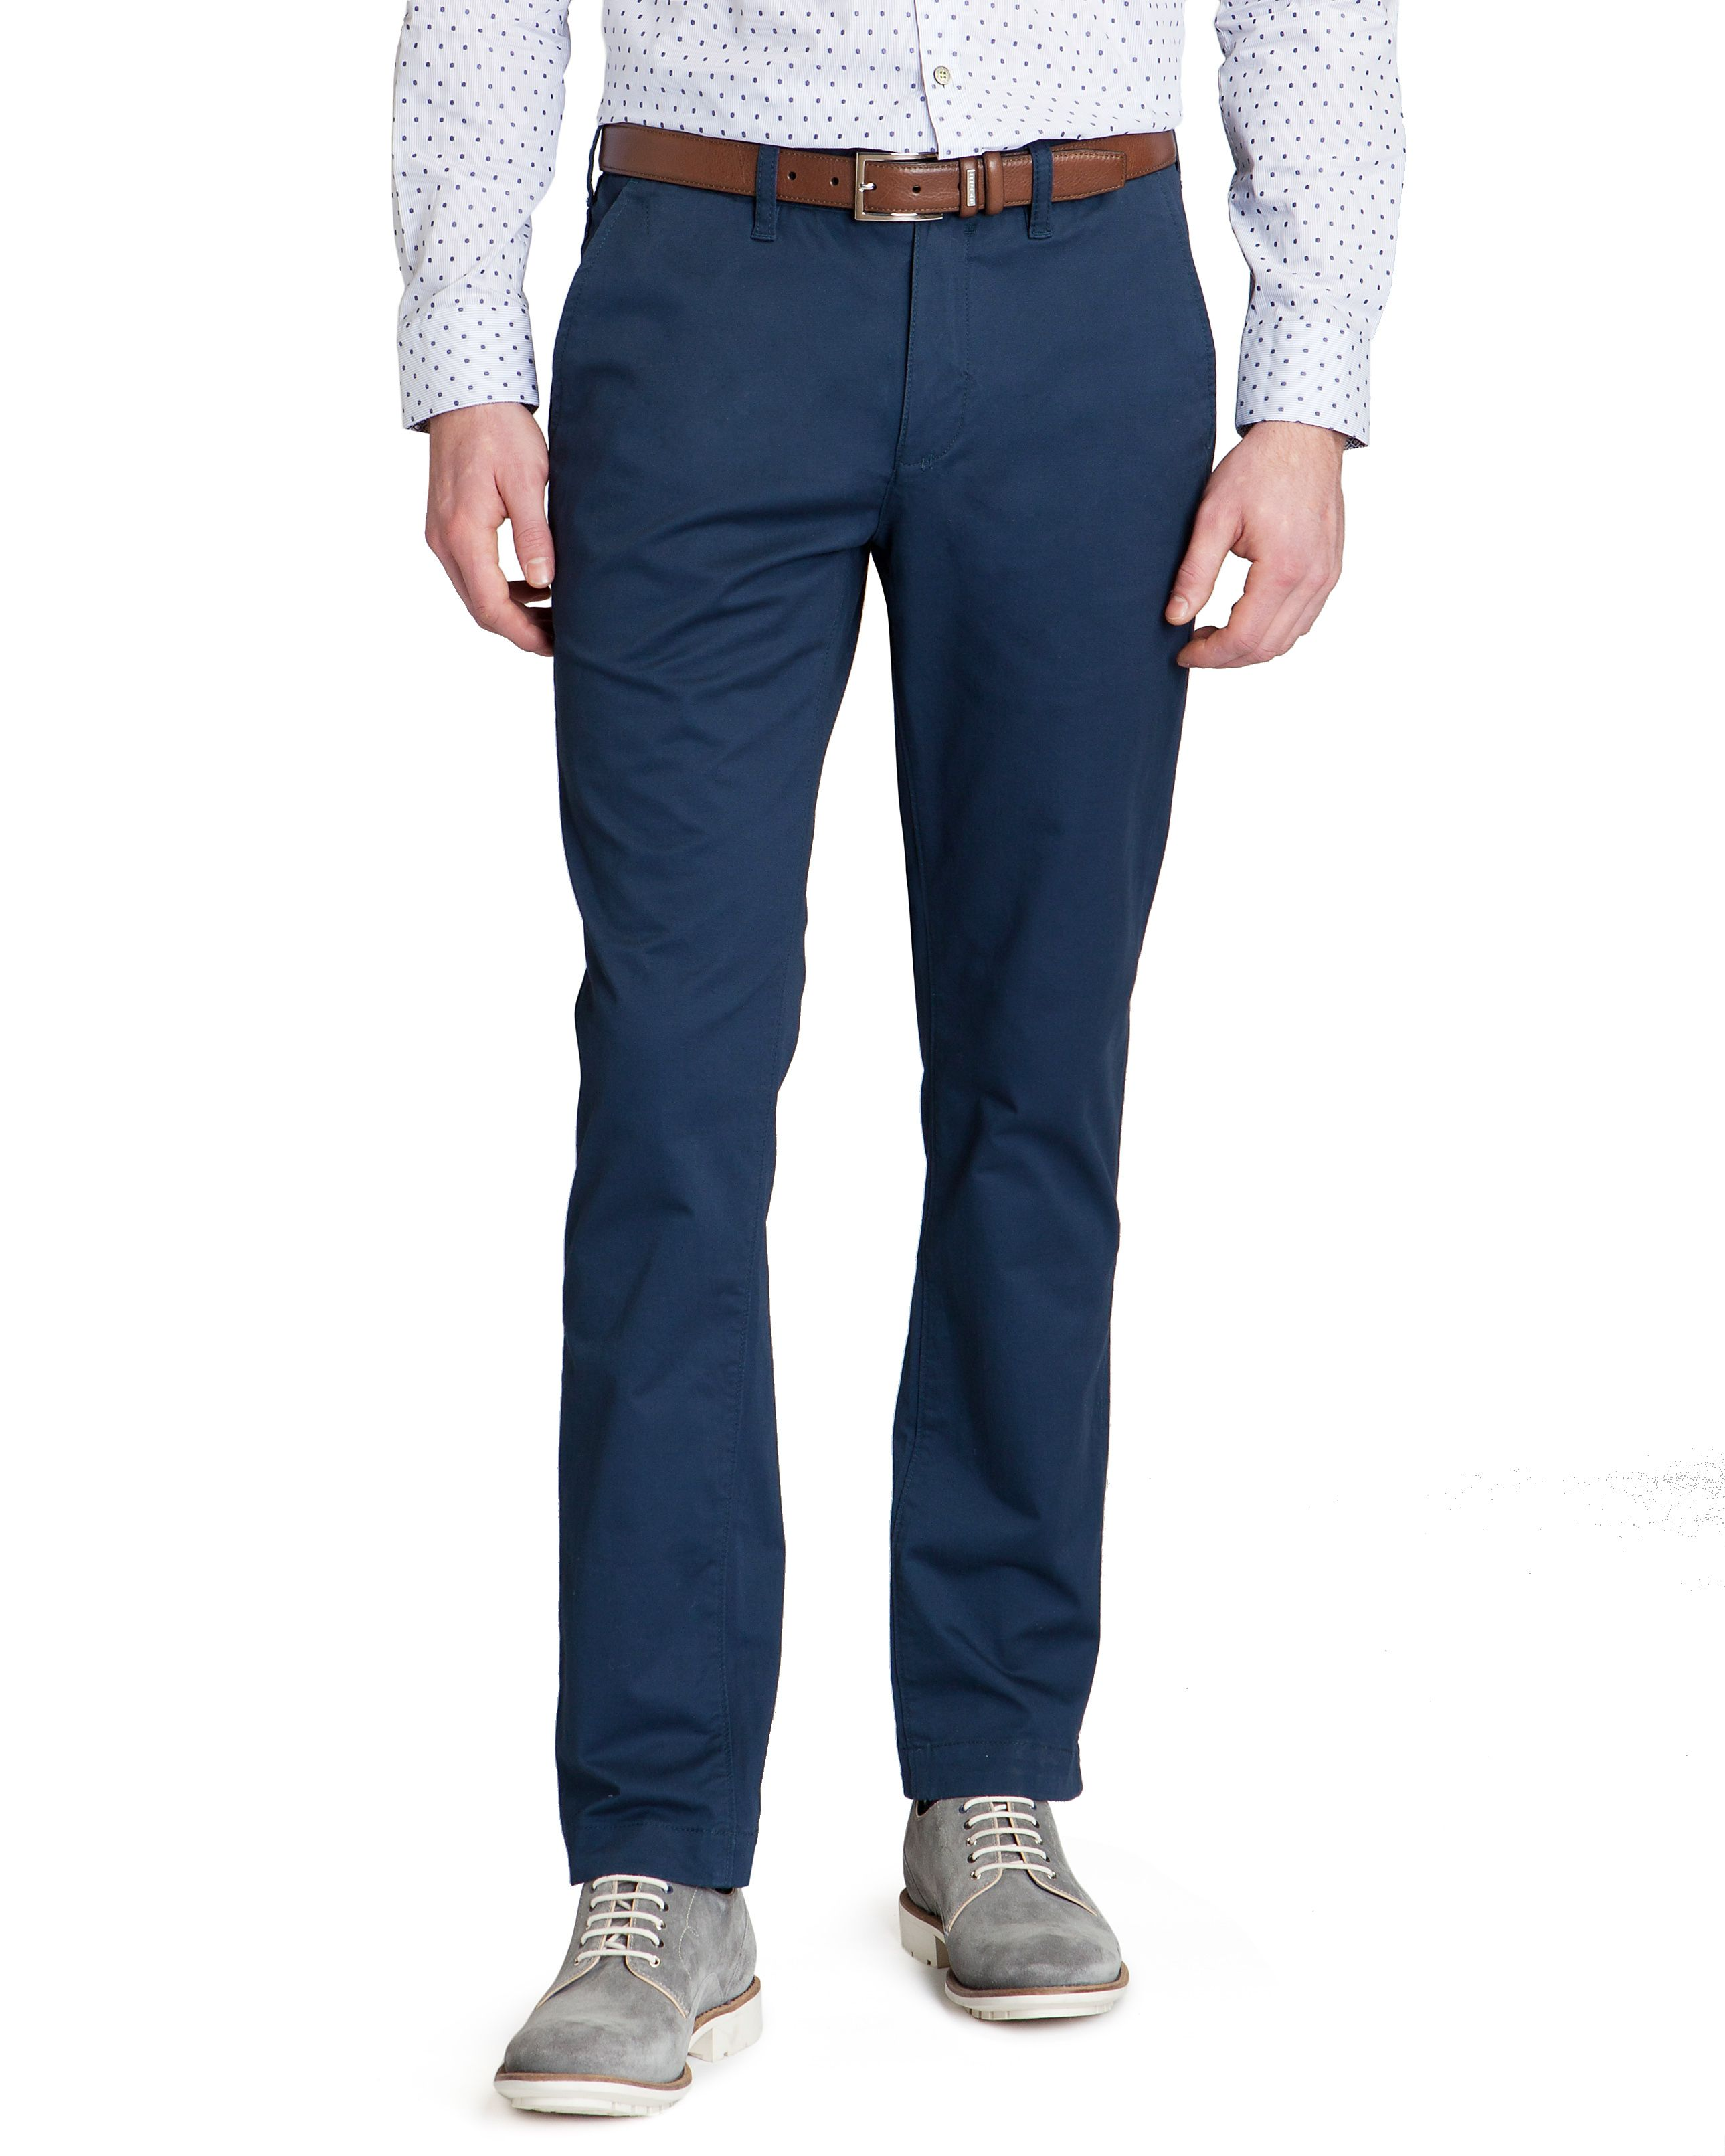 Mordord slim fit chino